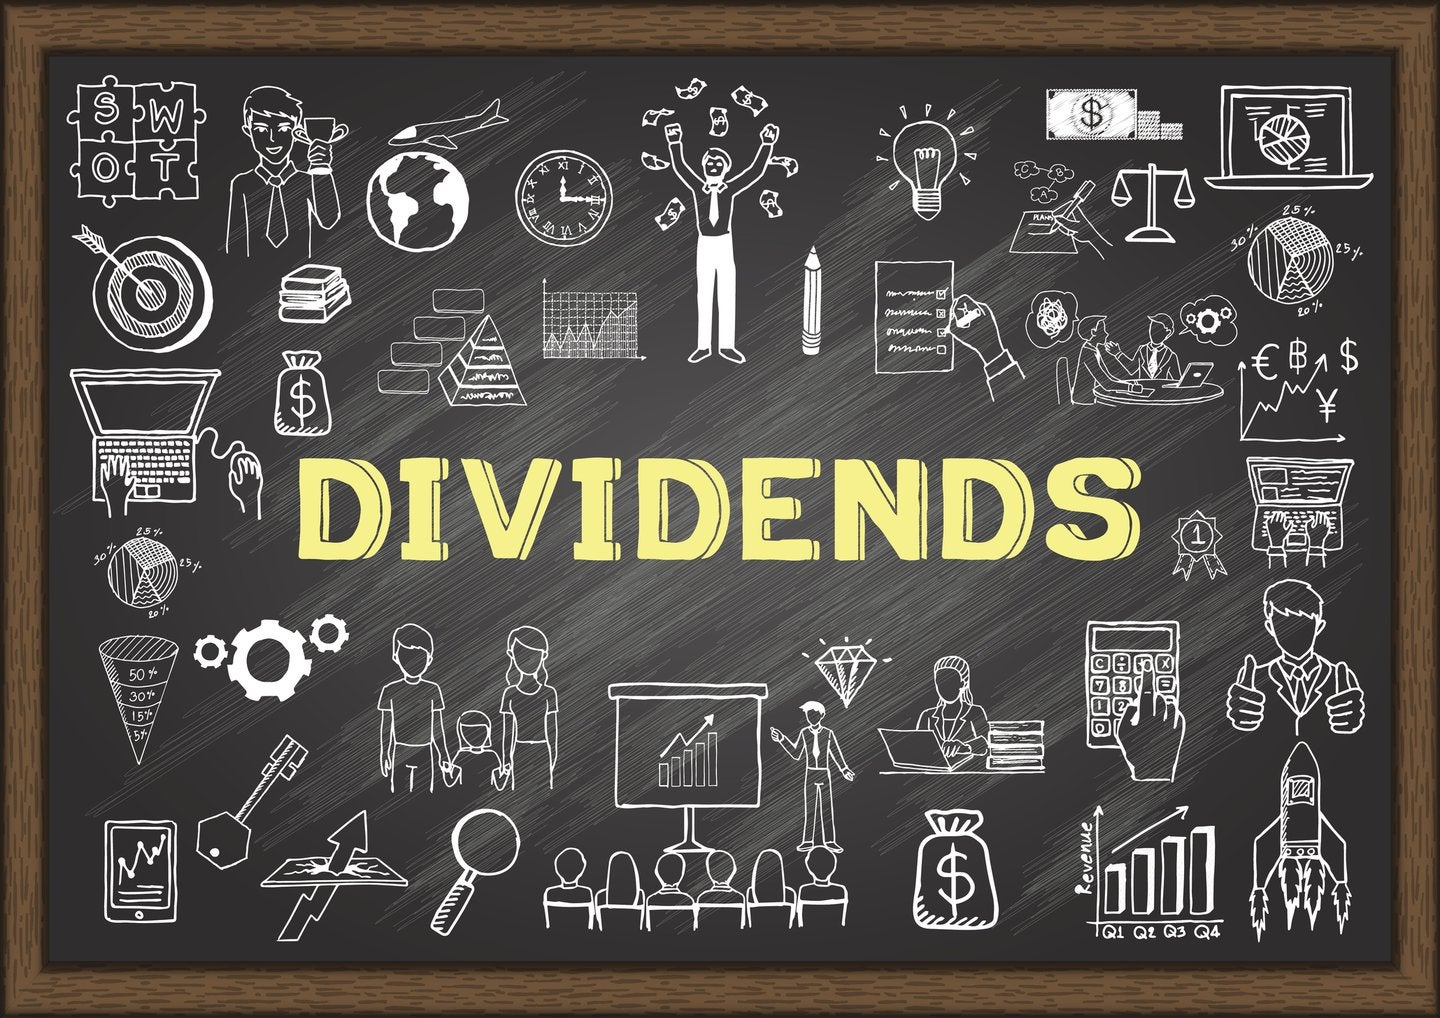 dividends written on a chalkboard surrounded by drawings